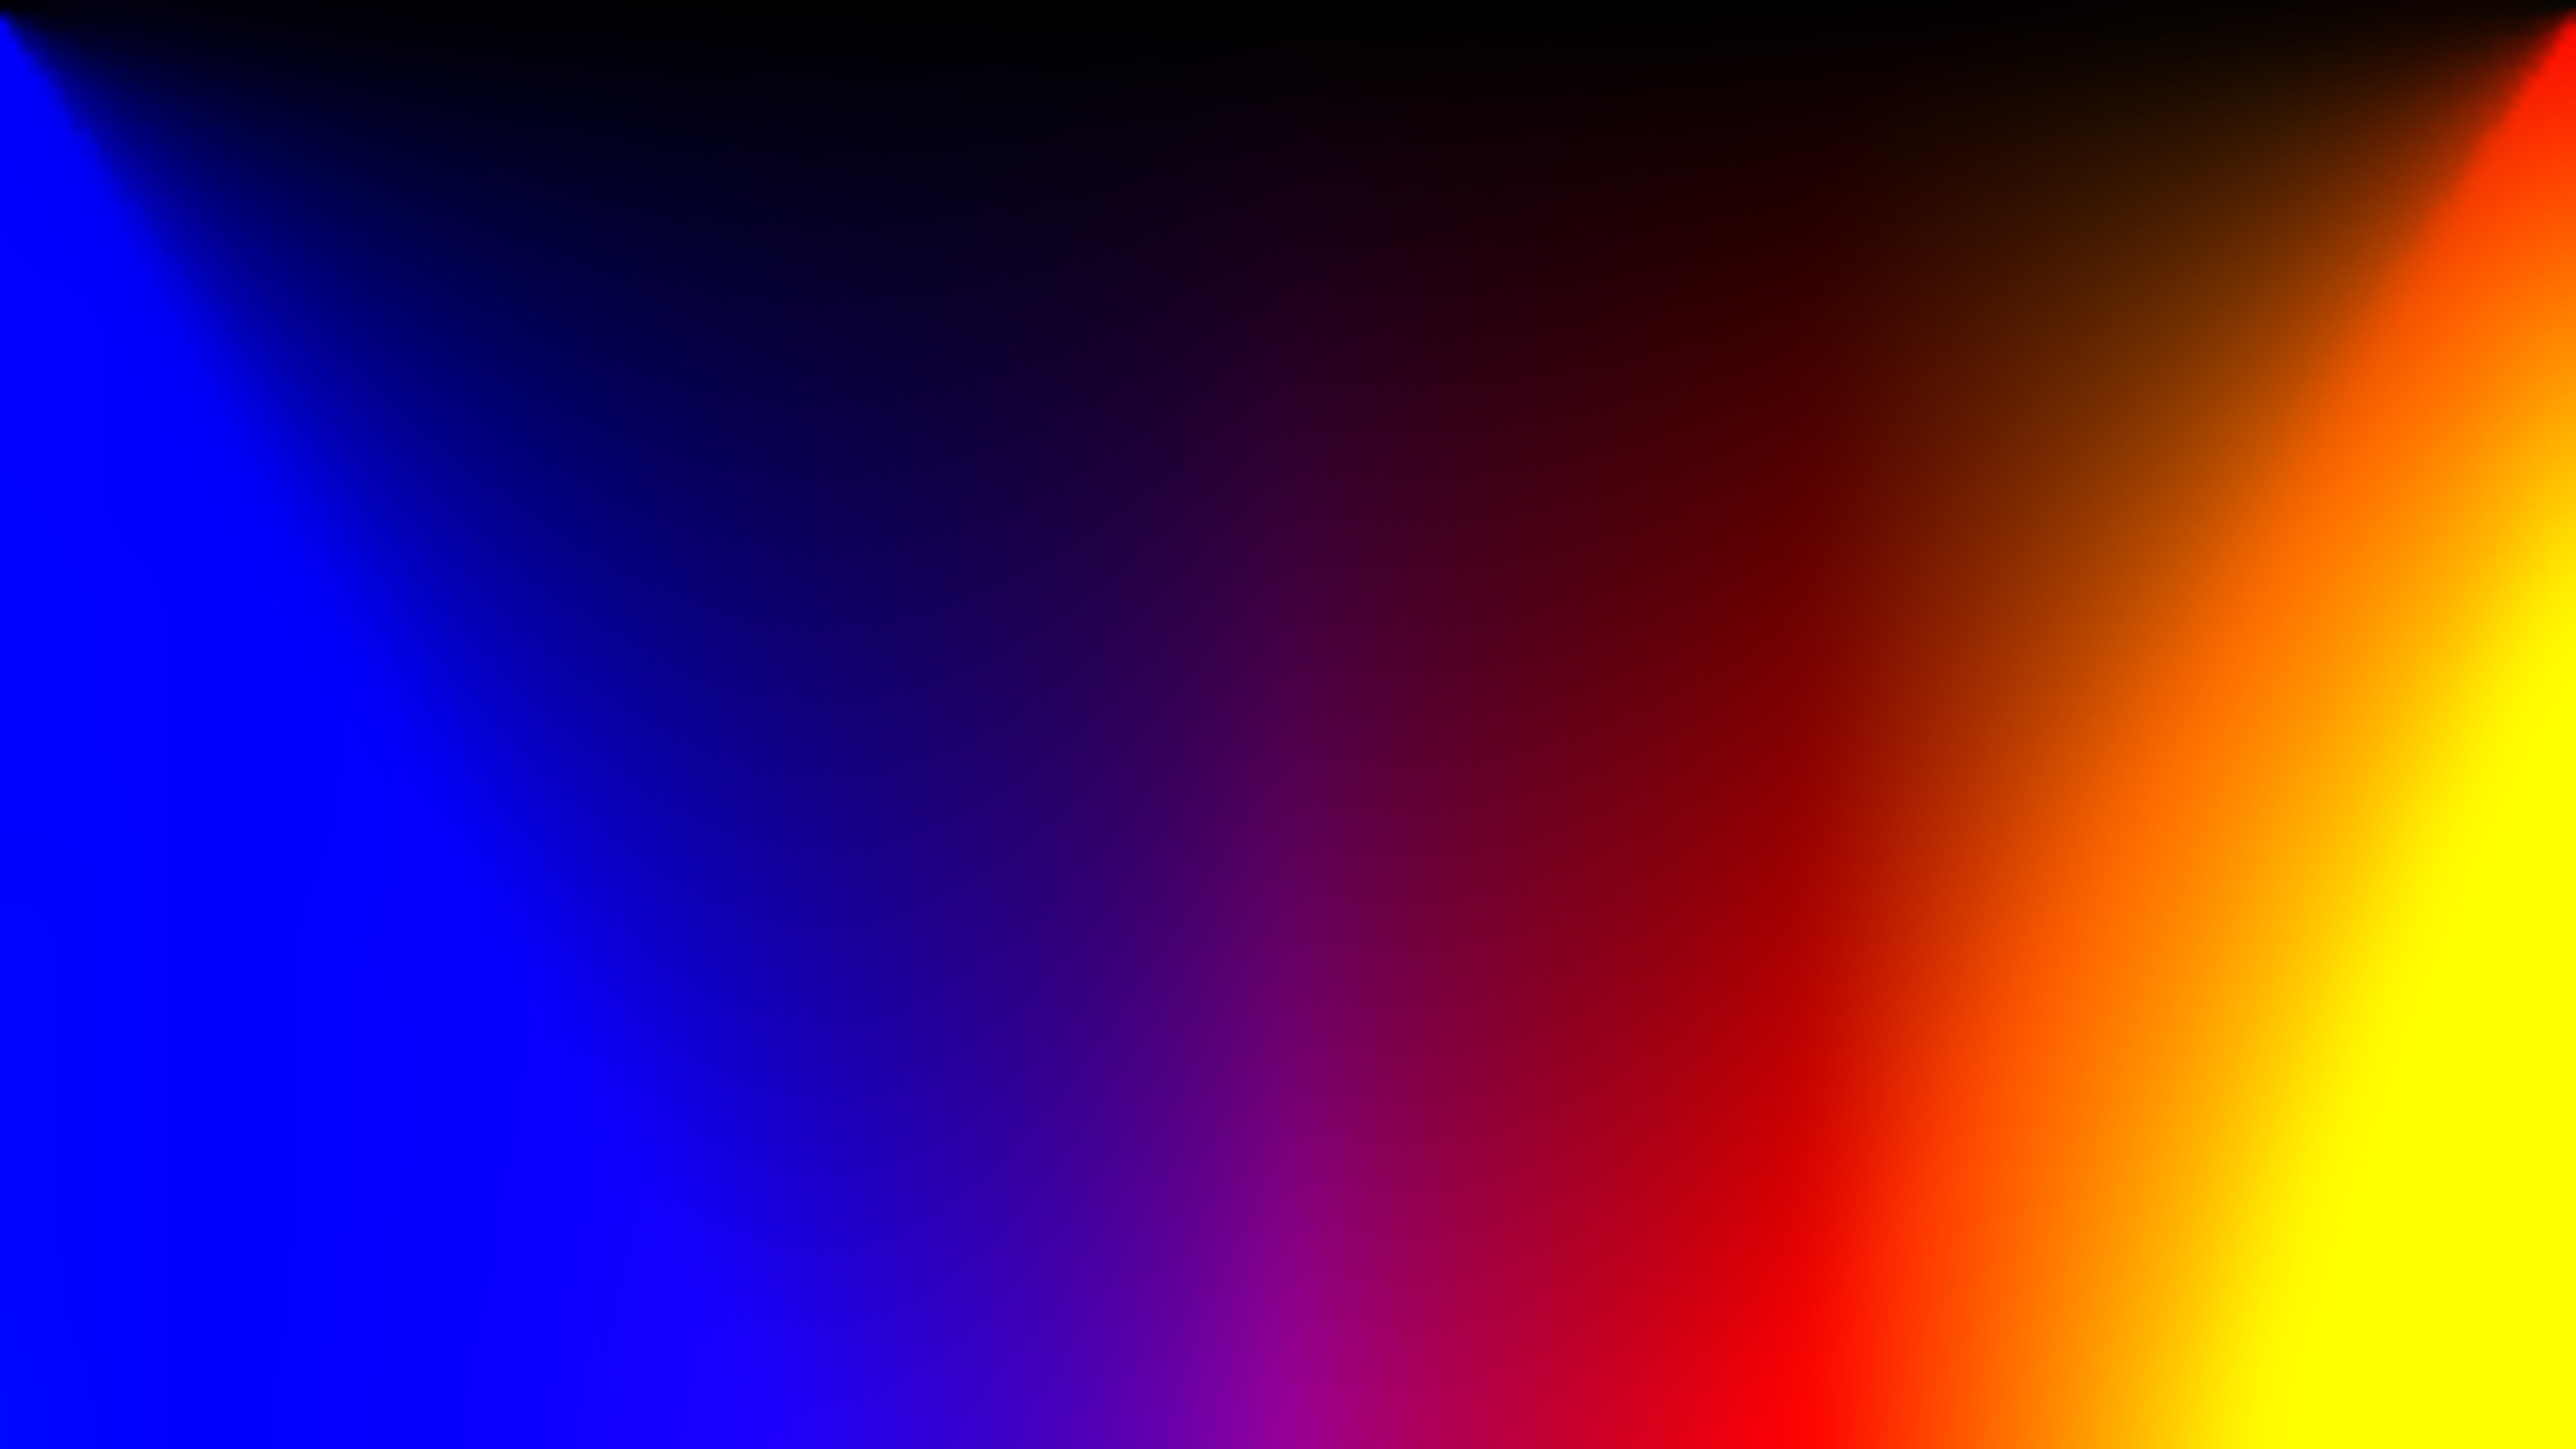 … colors colorful abstract blue purple red orange yellow wallpaper …